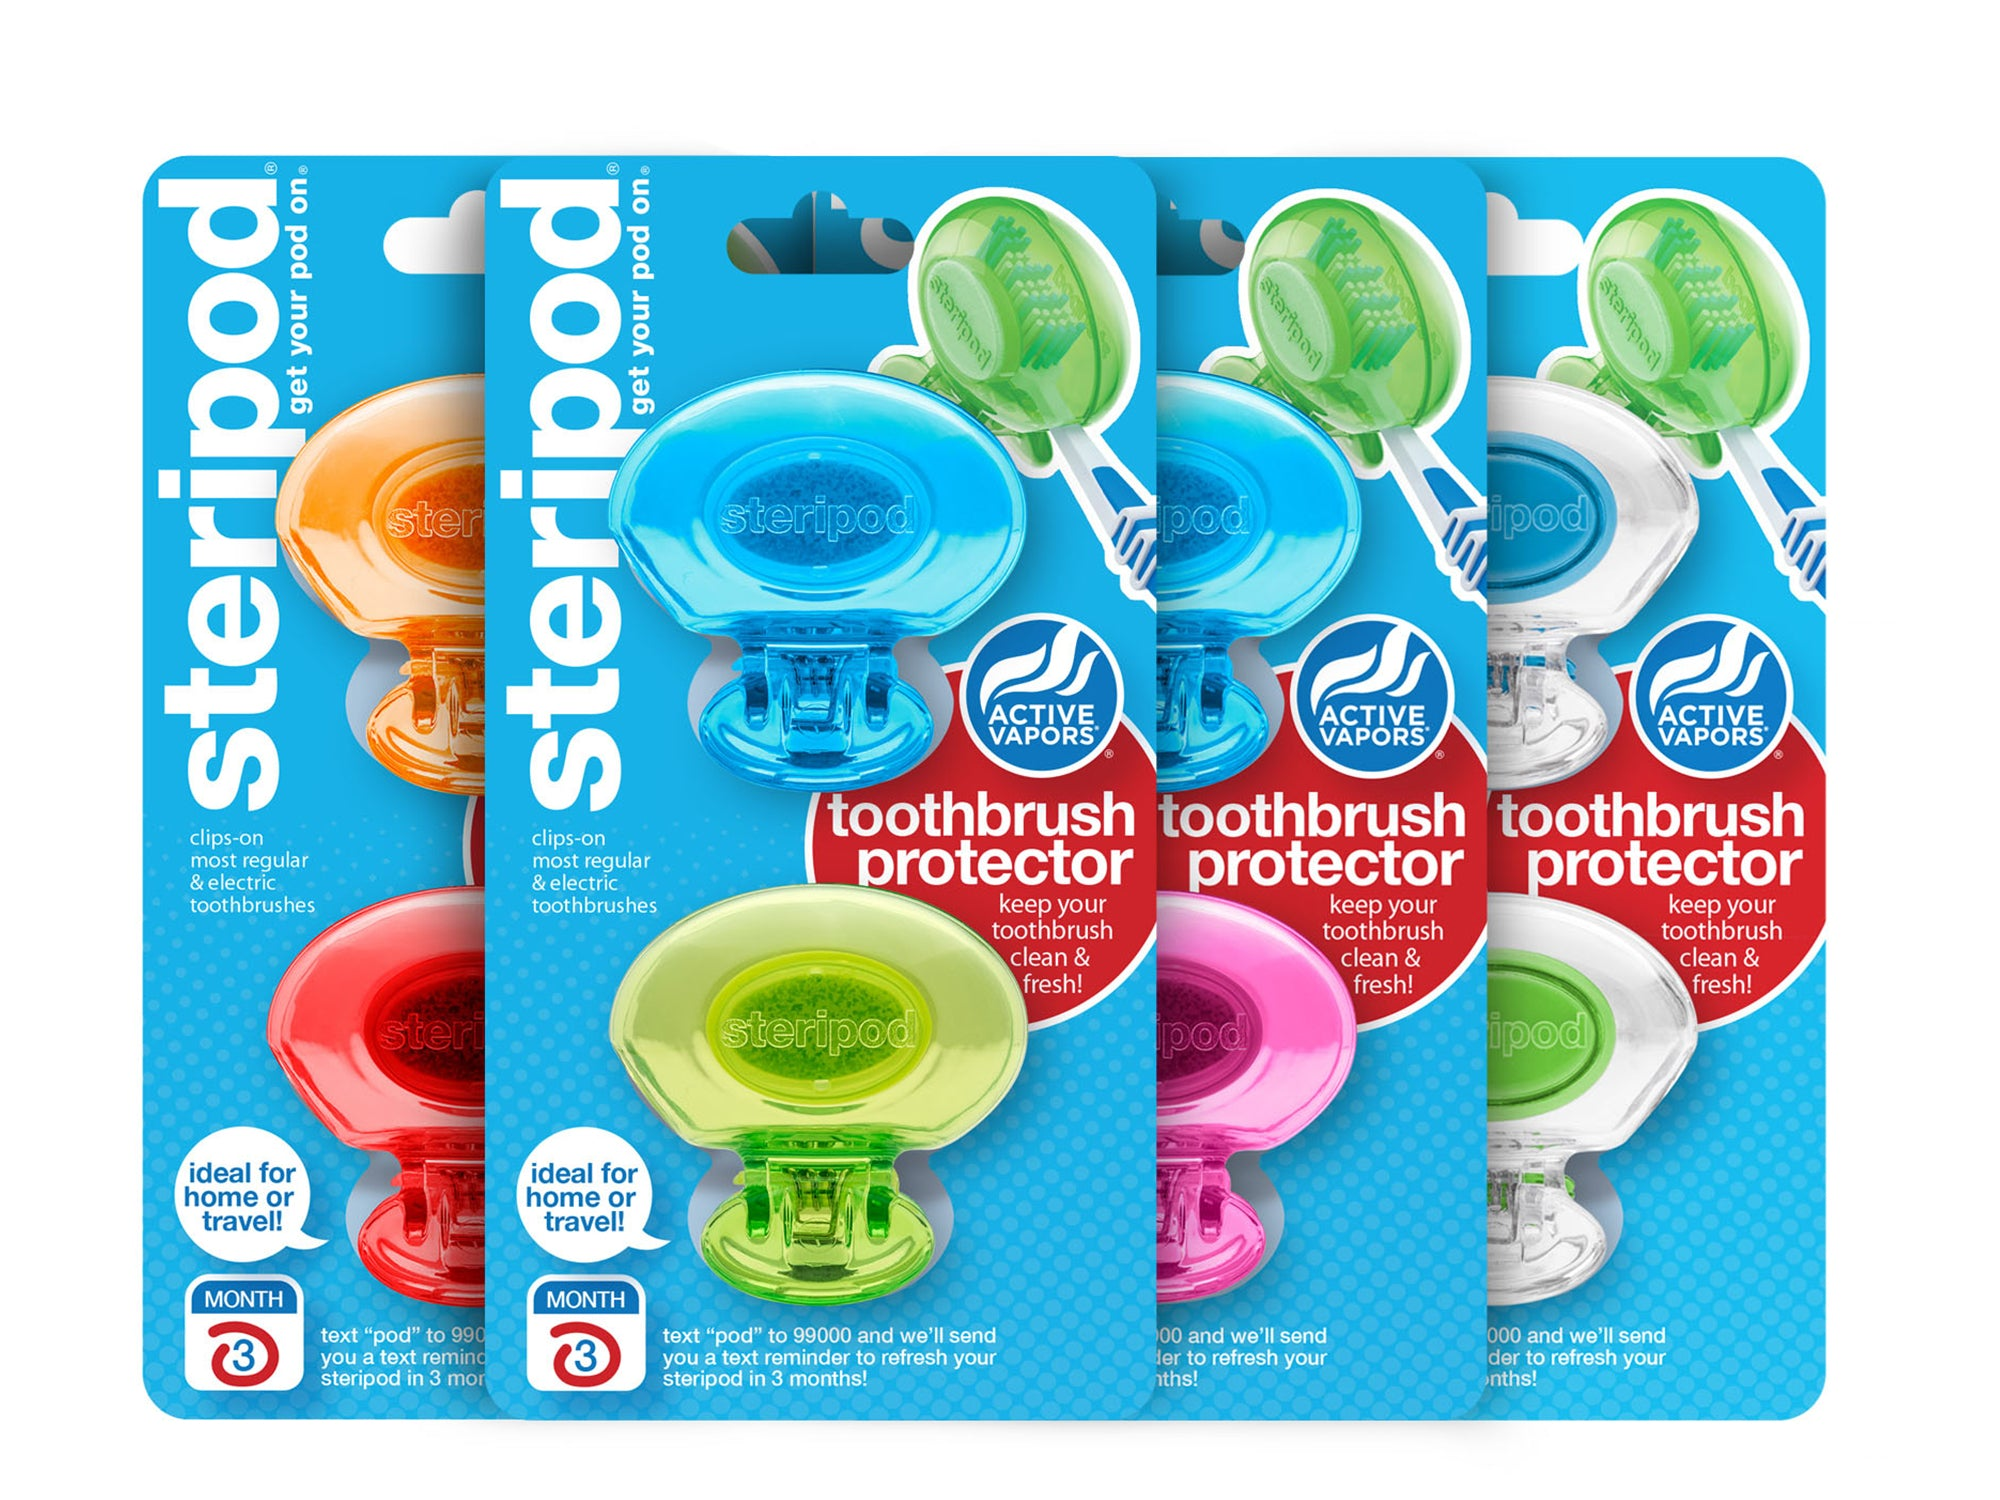 Classic Toothbrush Protectors Family Pack (Set of 8 Pods)